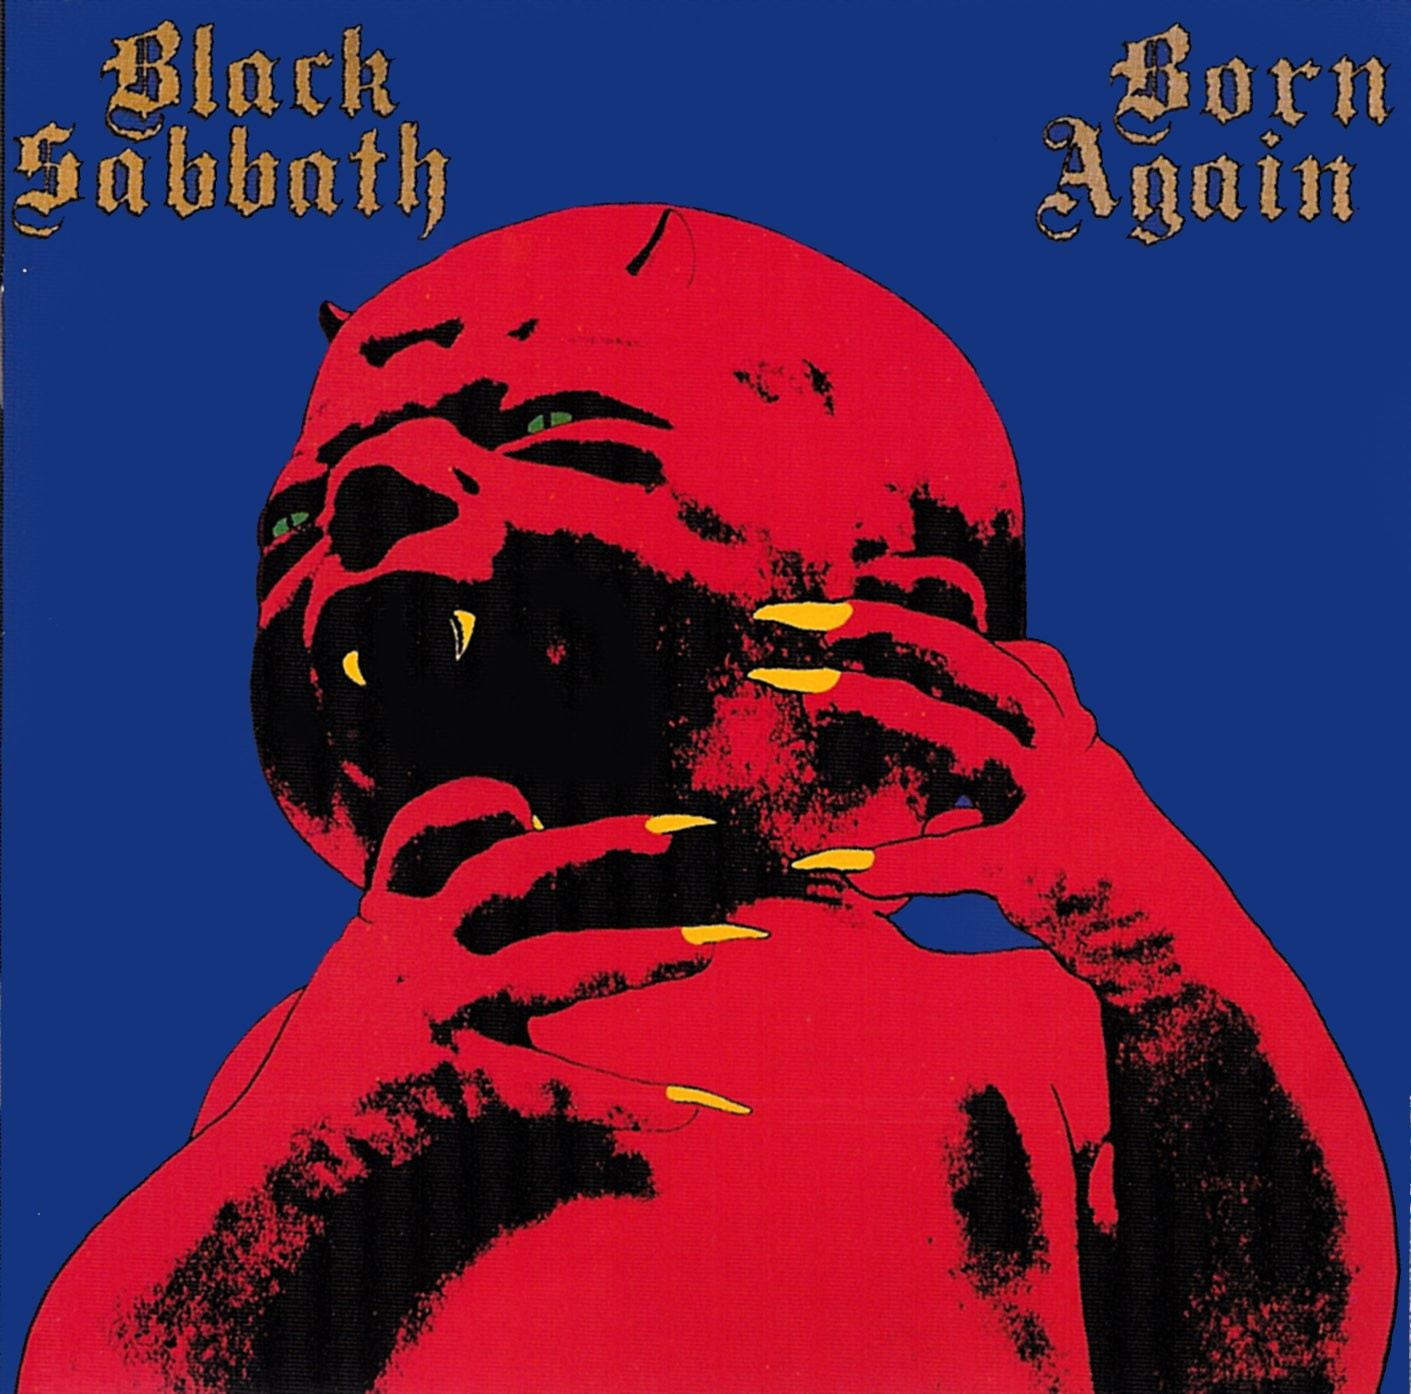 Album artwork for 'Born Again' by Black Sabbath